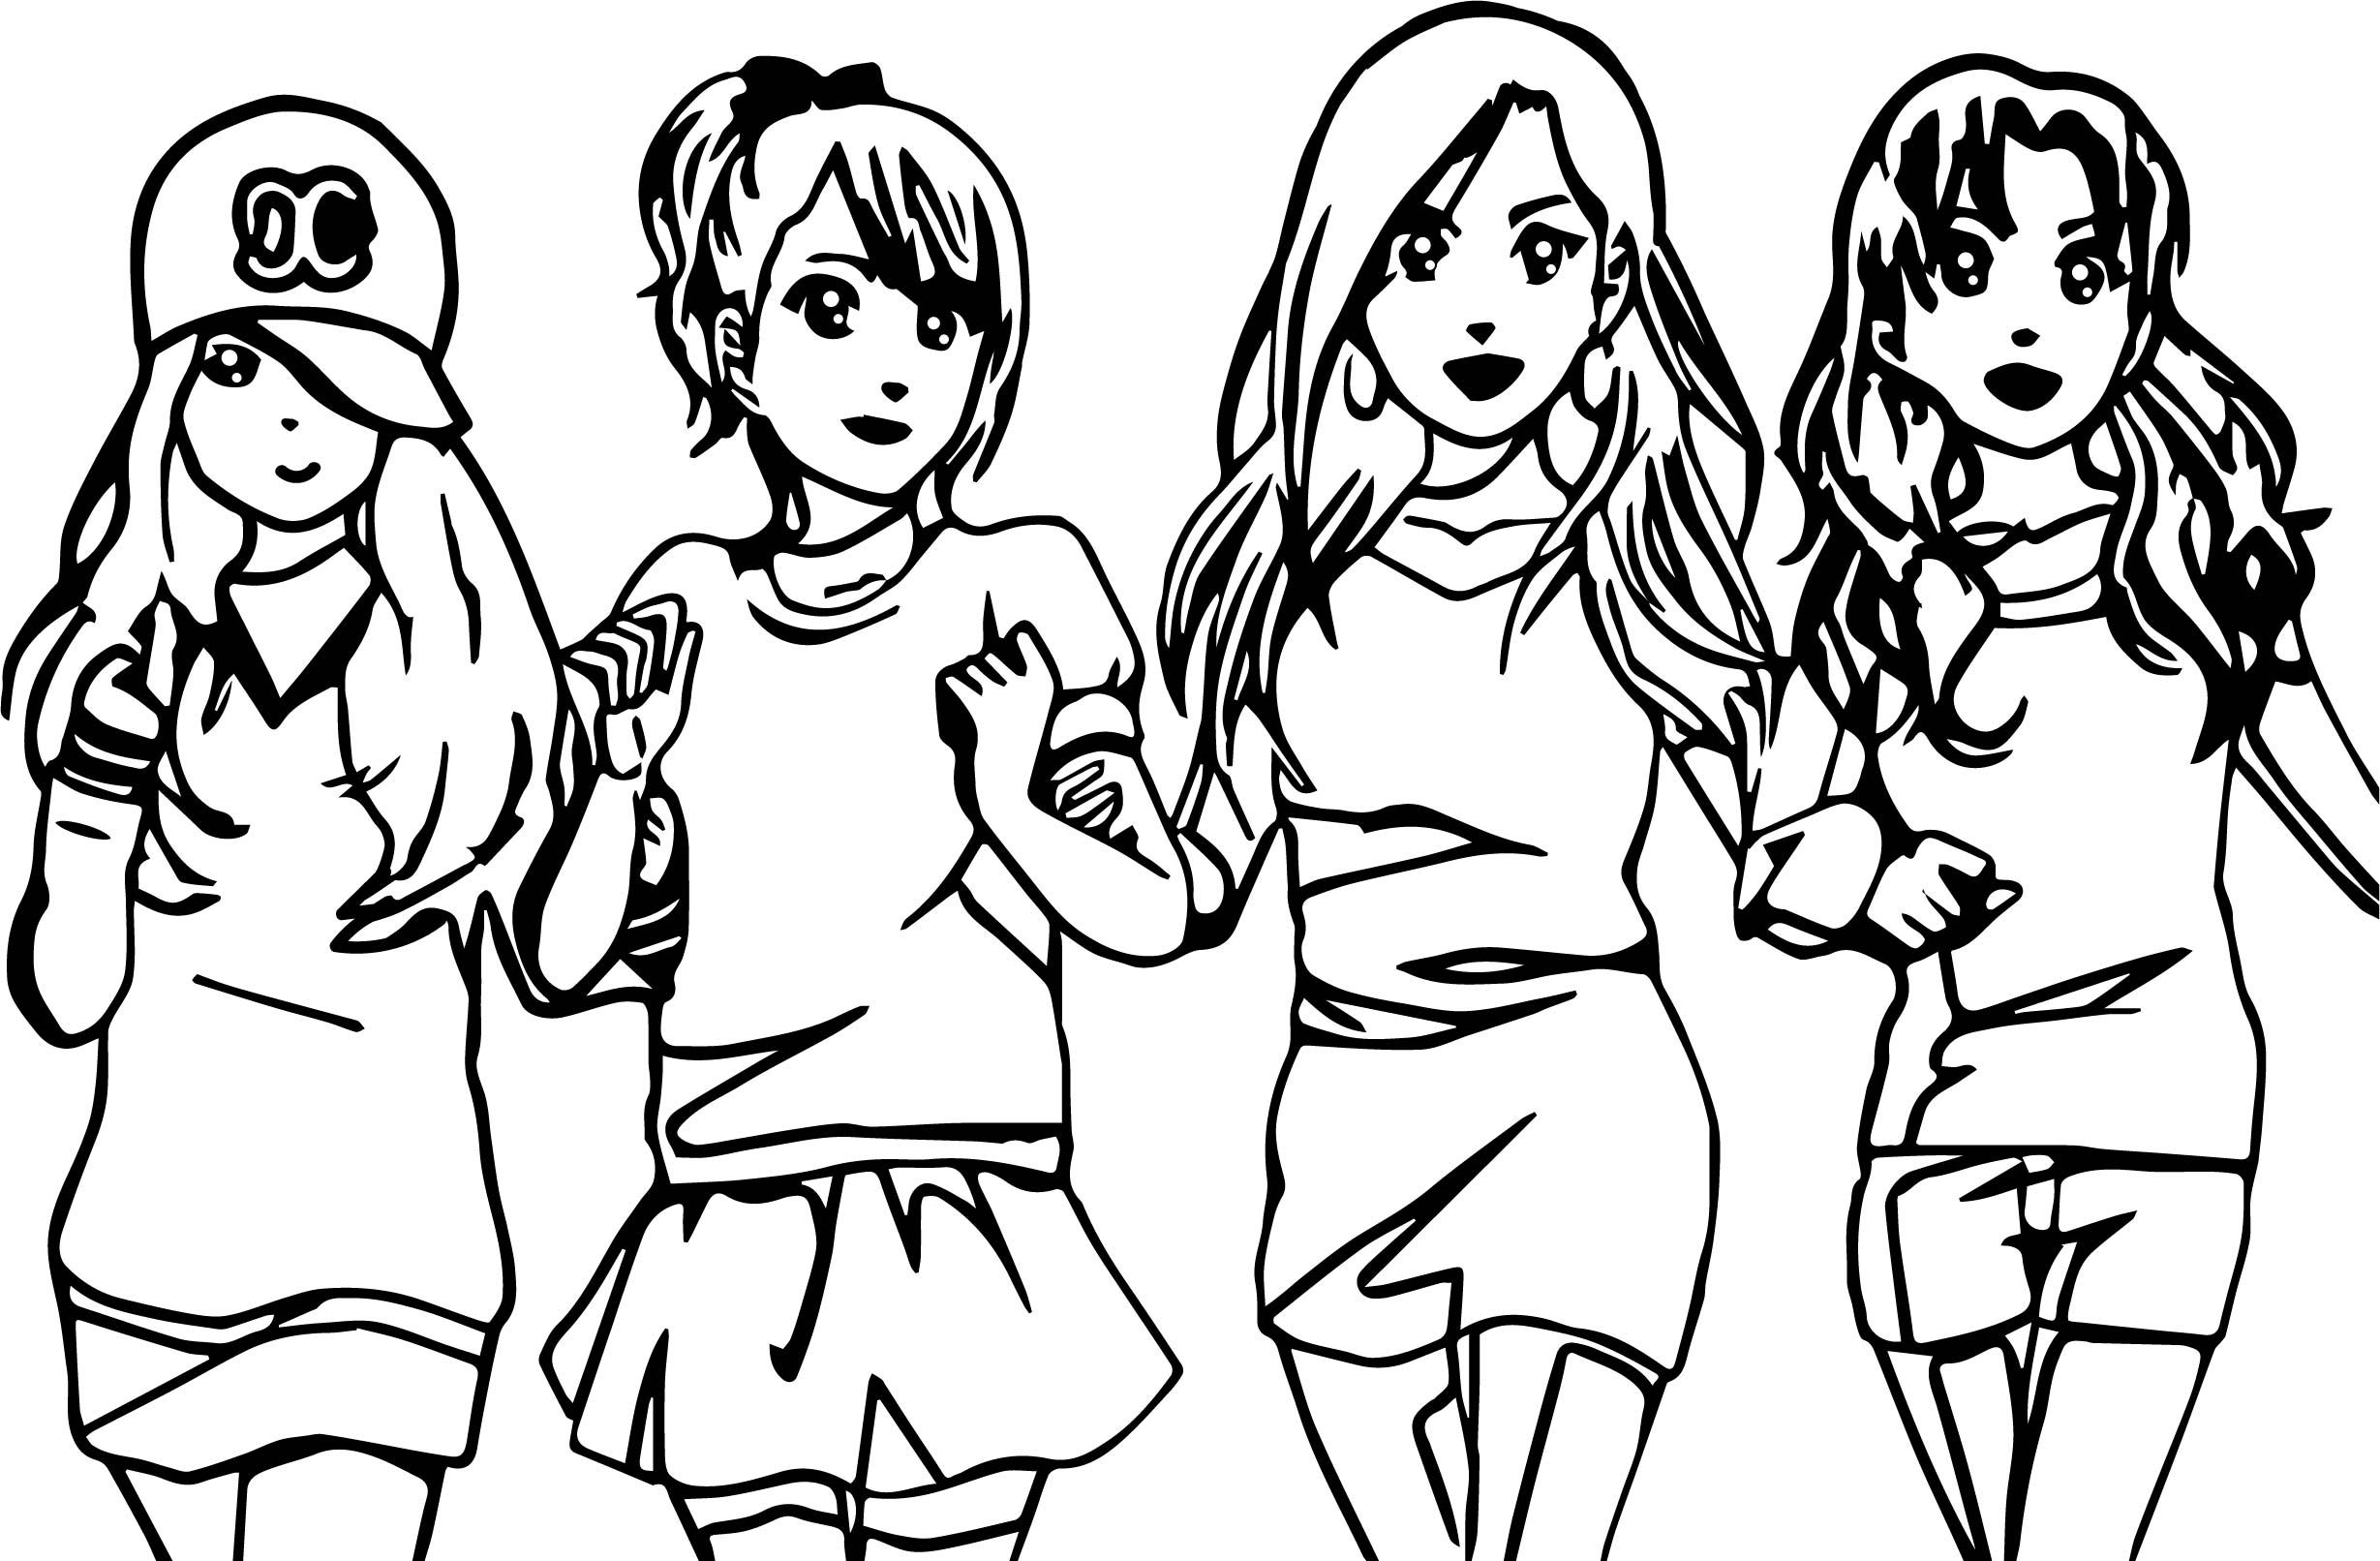 awesome Four Anime Best Friends Forever Coloring Page | Anime best ...